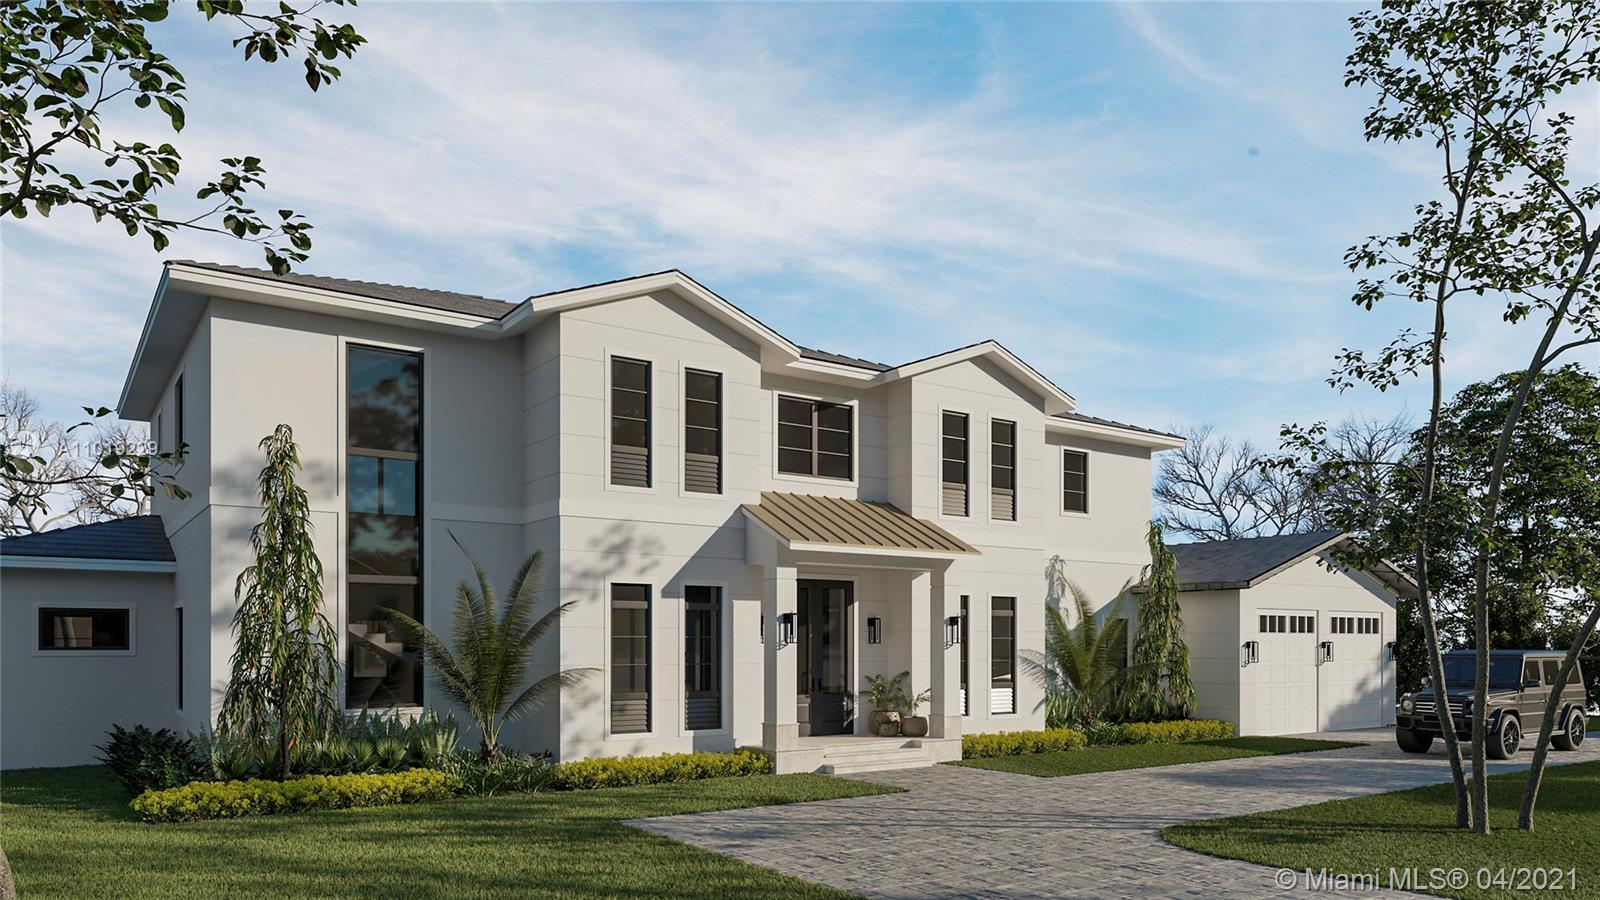 11907 70th Ave, Pinecrest, Florida 33156